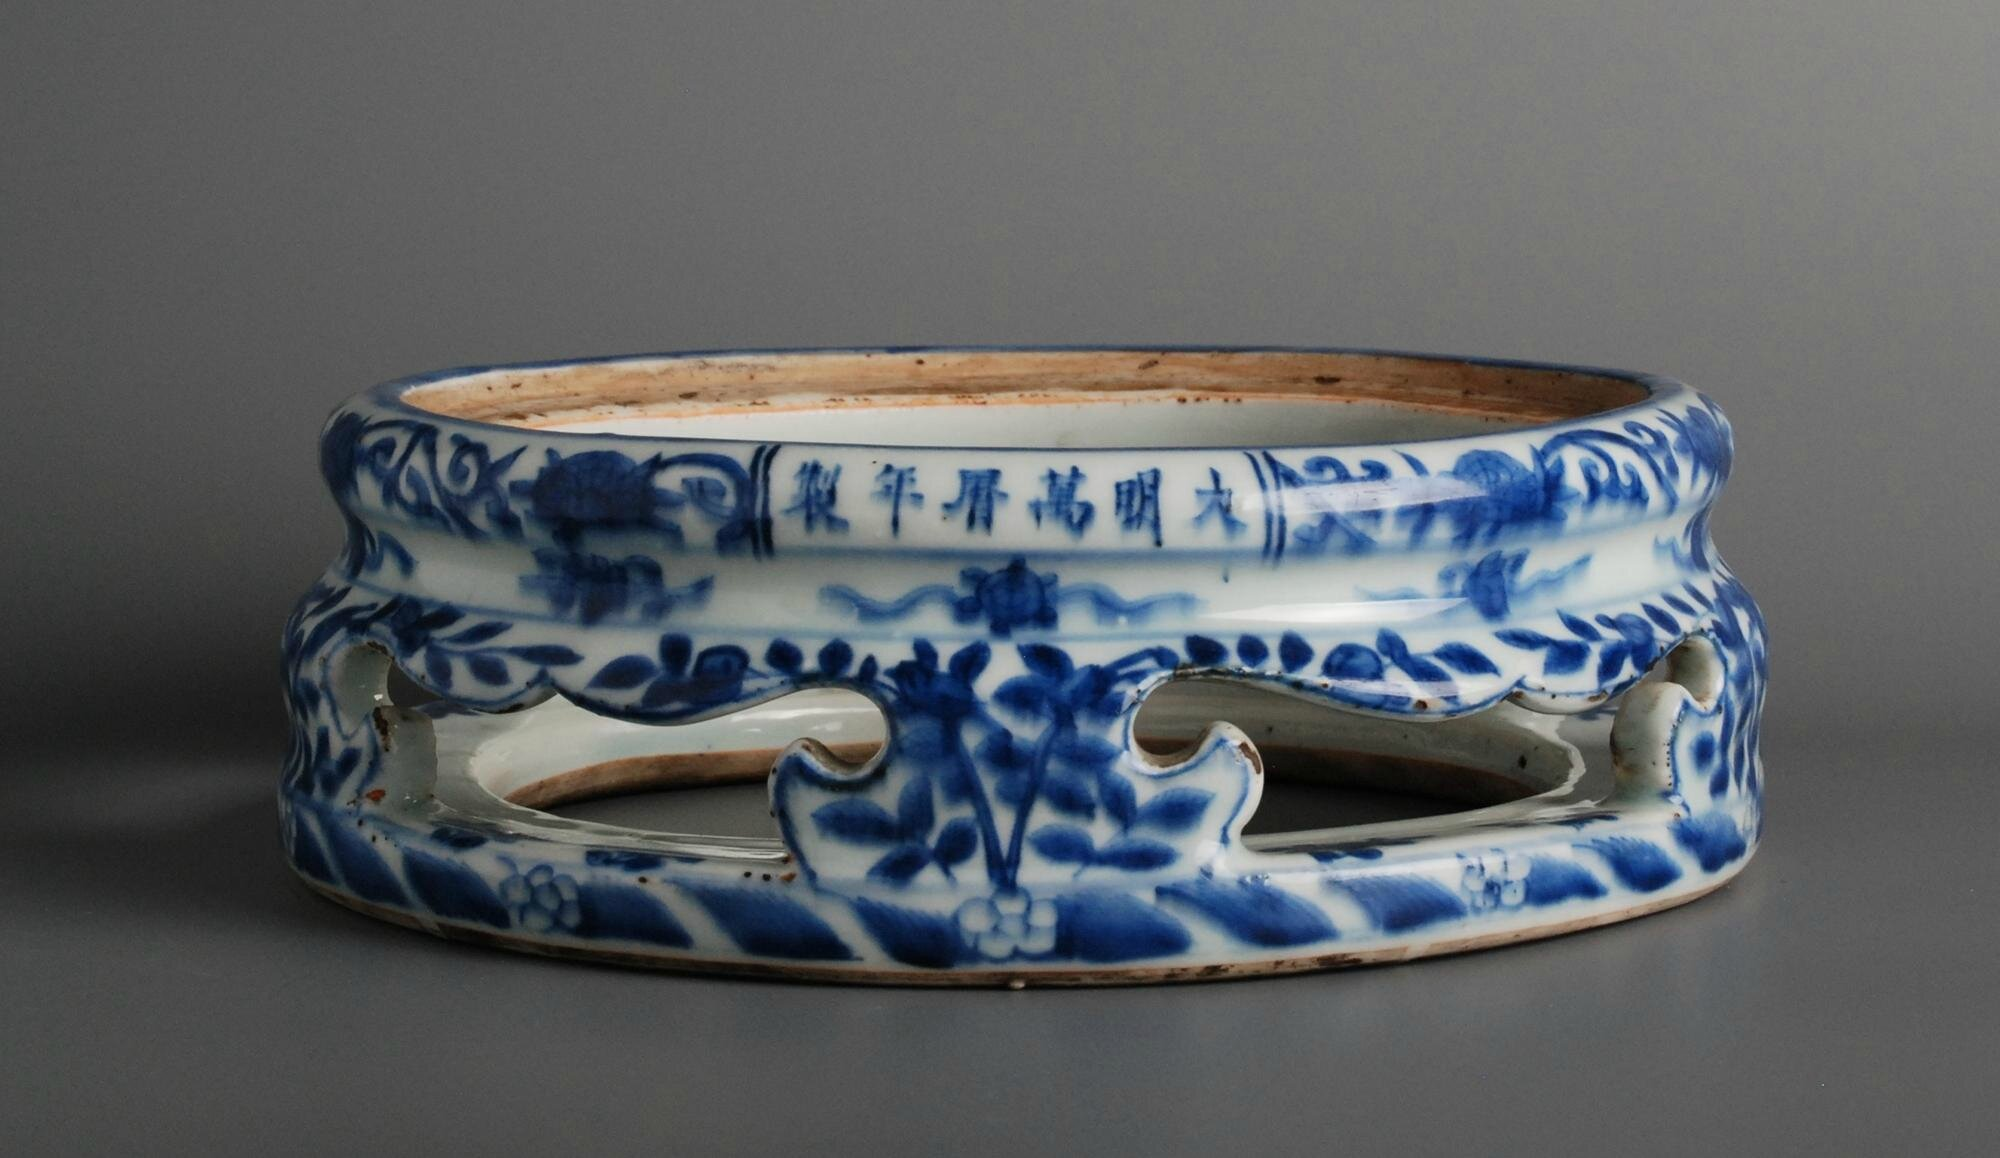 Ming dynasty blue and white porcelains vanderven oriental art at ming dynasty blue and white porcelains vanderven oriental art at brafa art fair brussels 21 29 january 2017 reviewsmspy